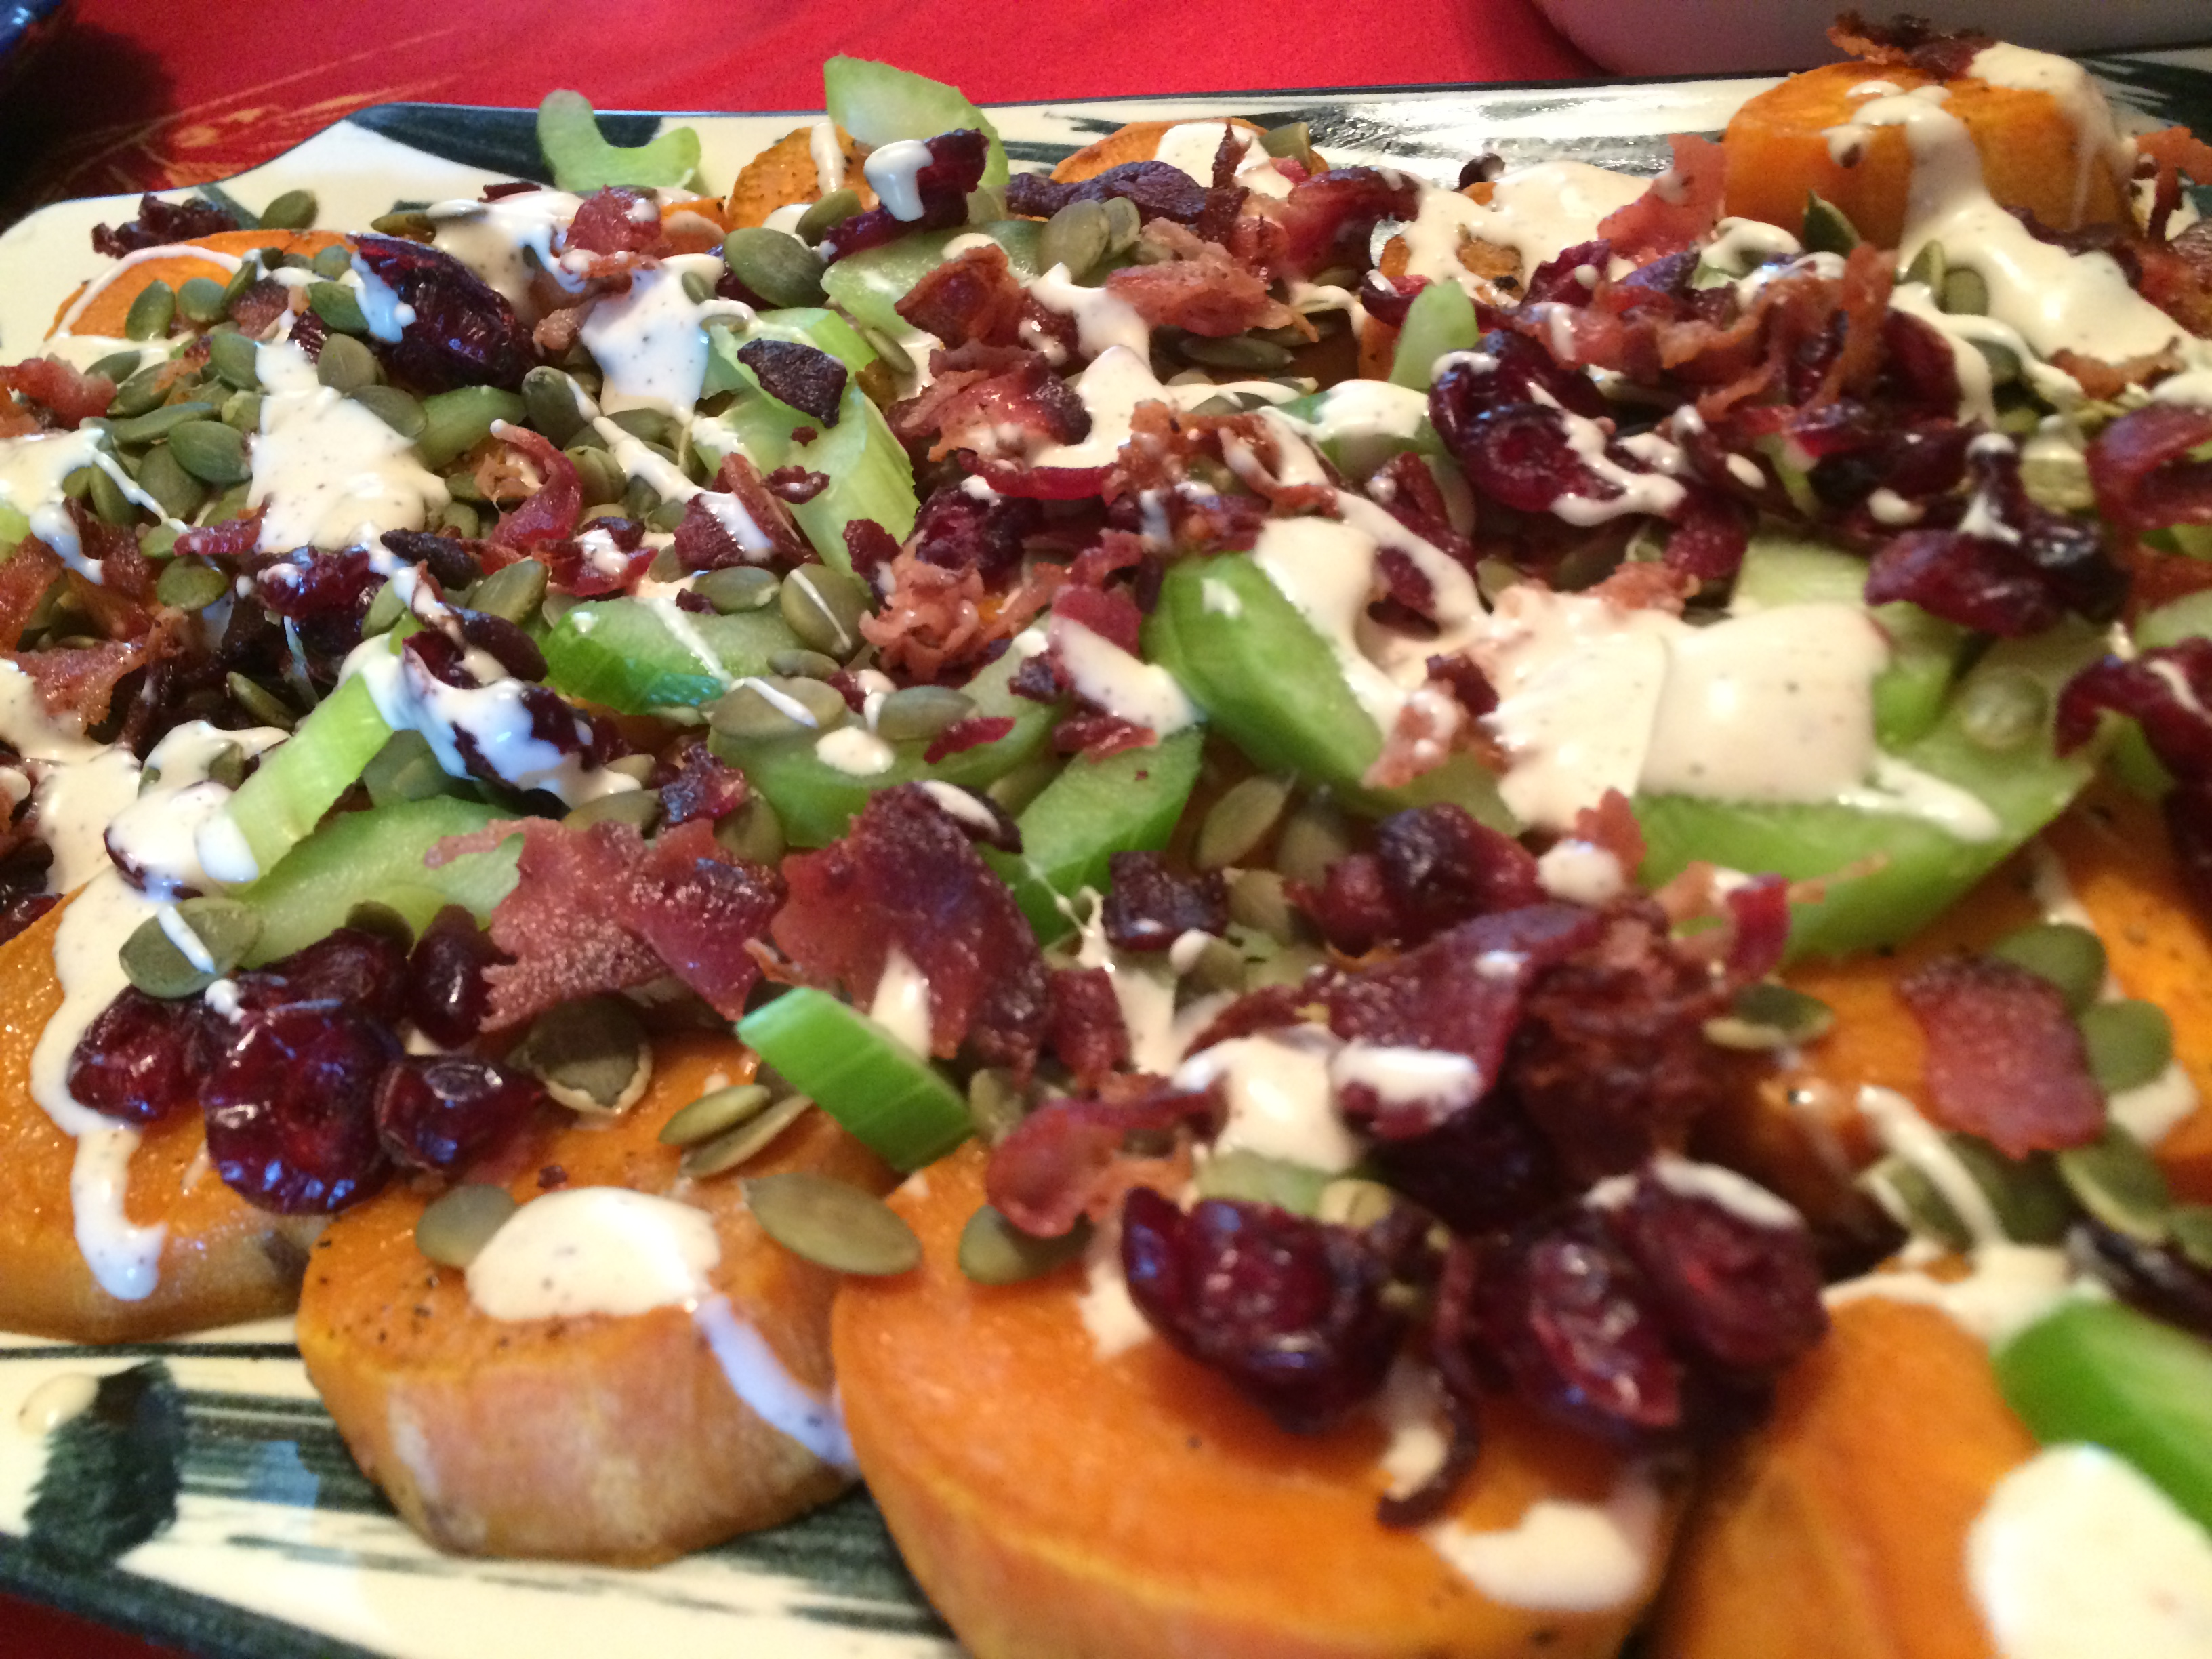 Tips For Easy Summer Entertaining & A Must Try Sweet Potato Salad Recipe